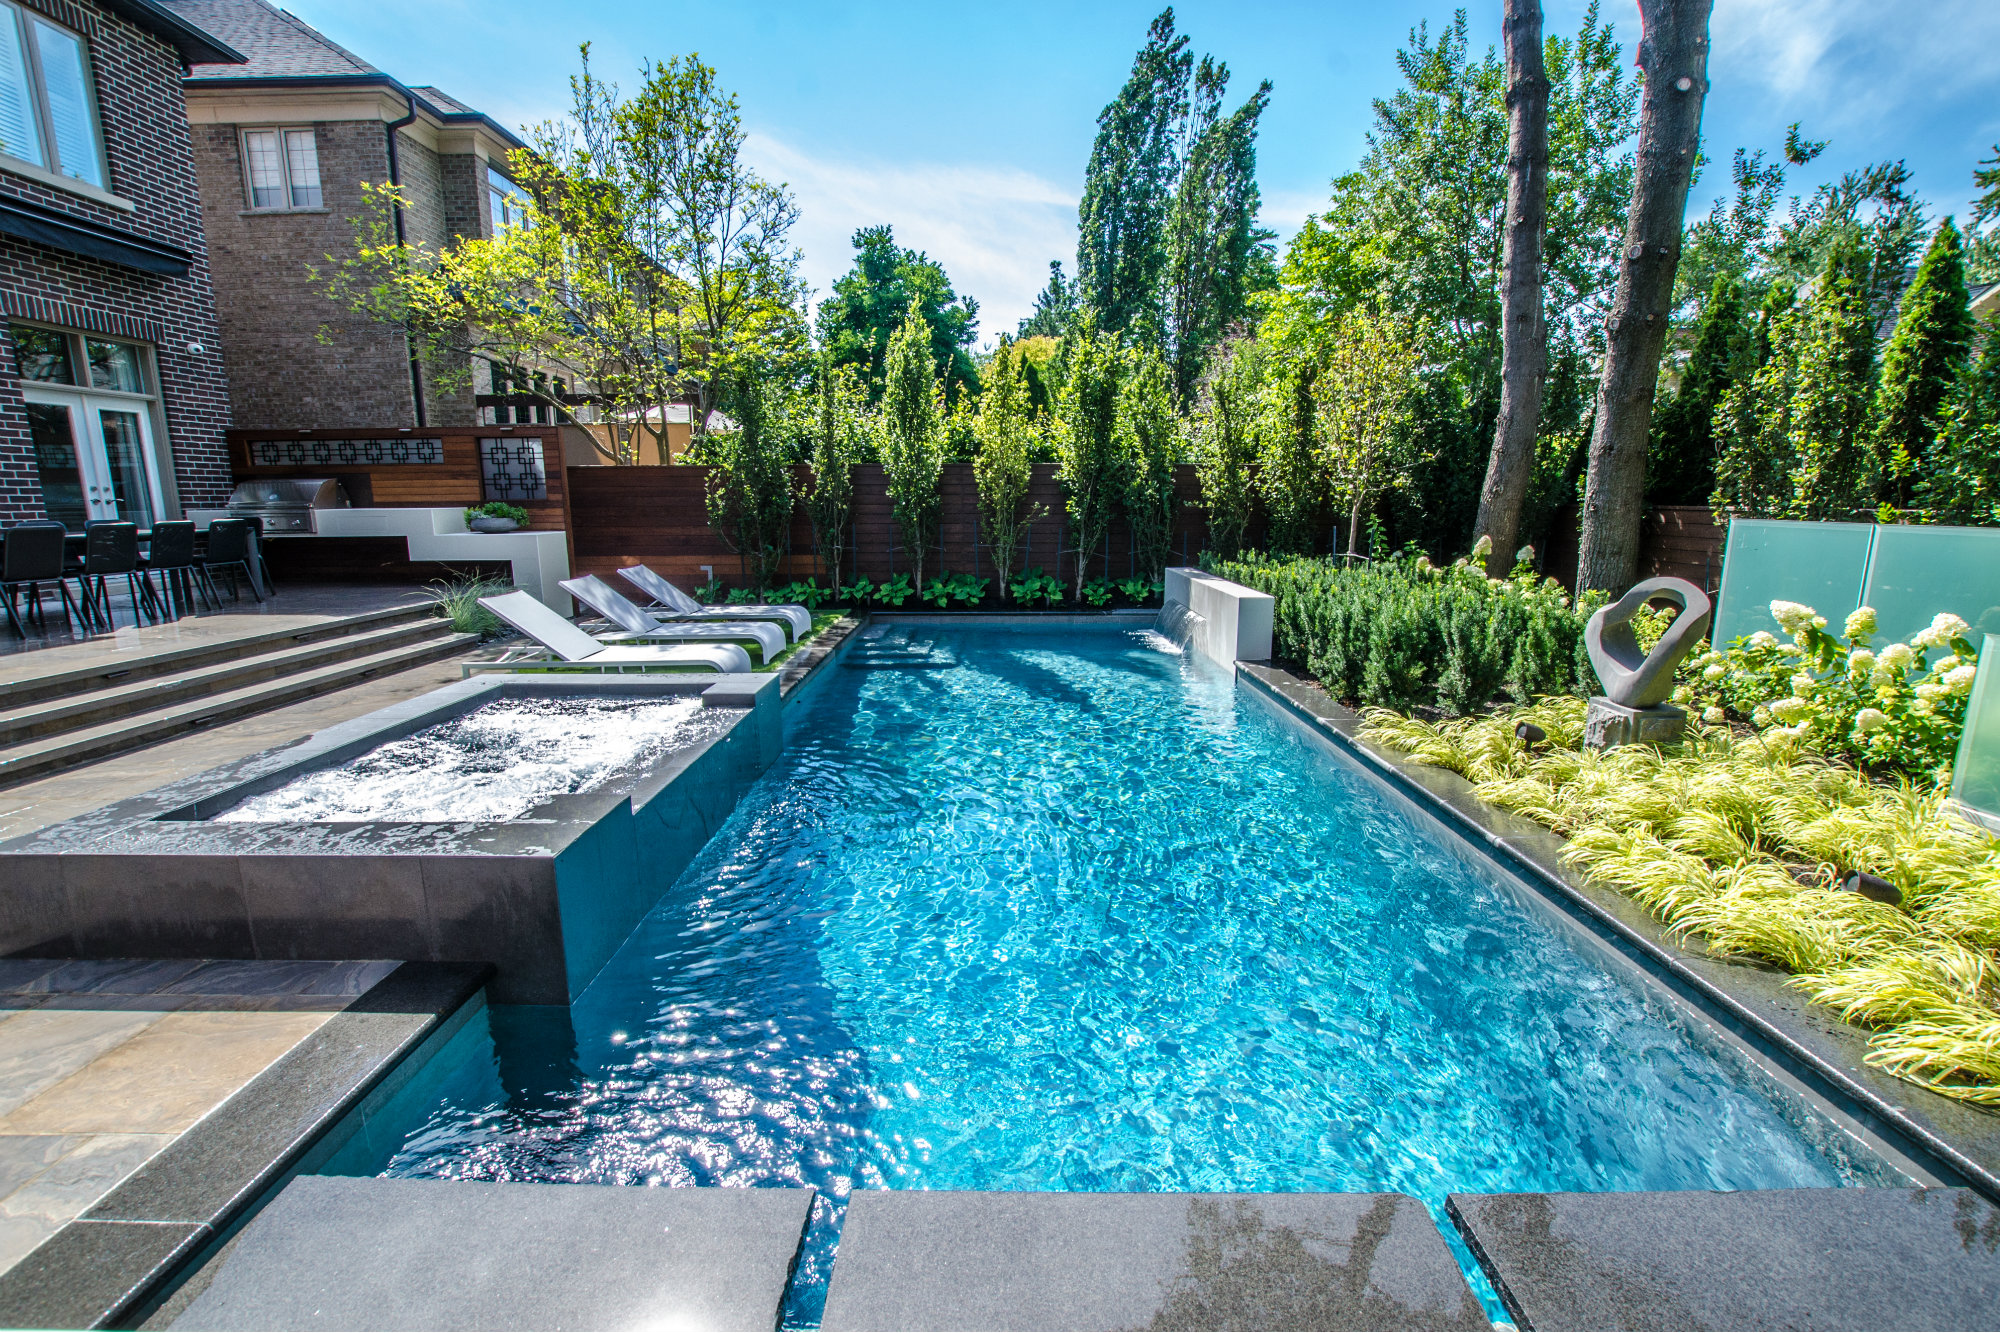 Garden Art Pool Amp Spa News Design Designers Pools